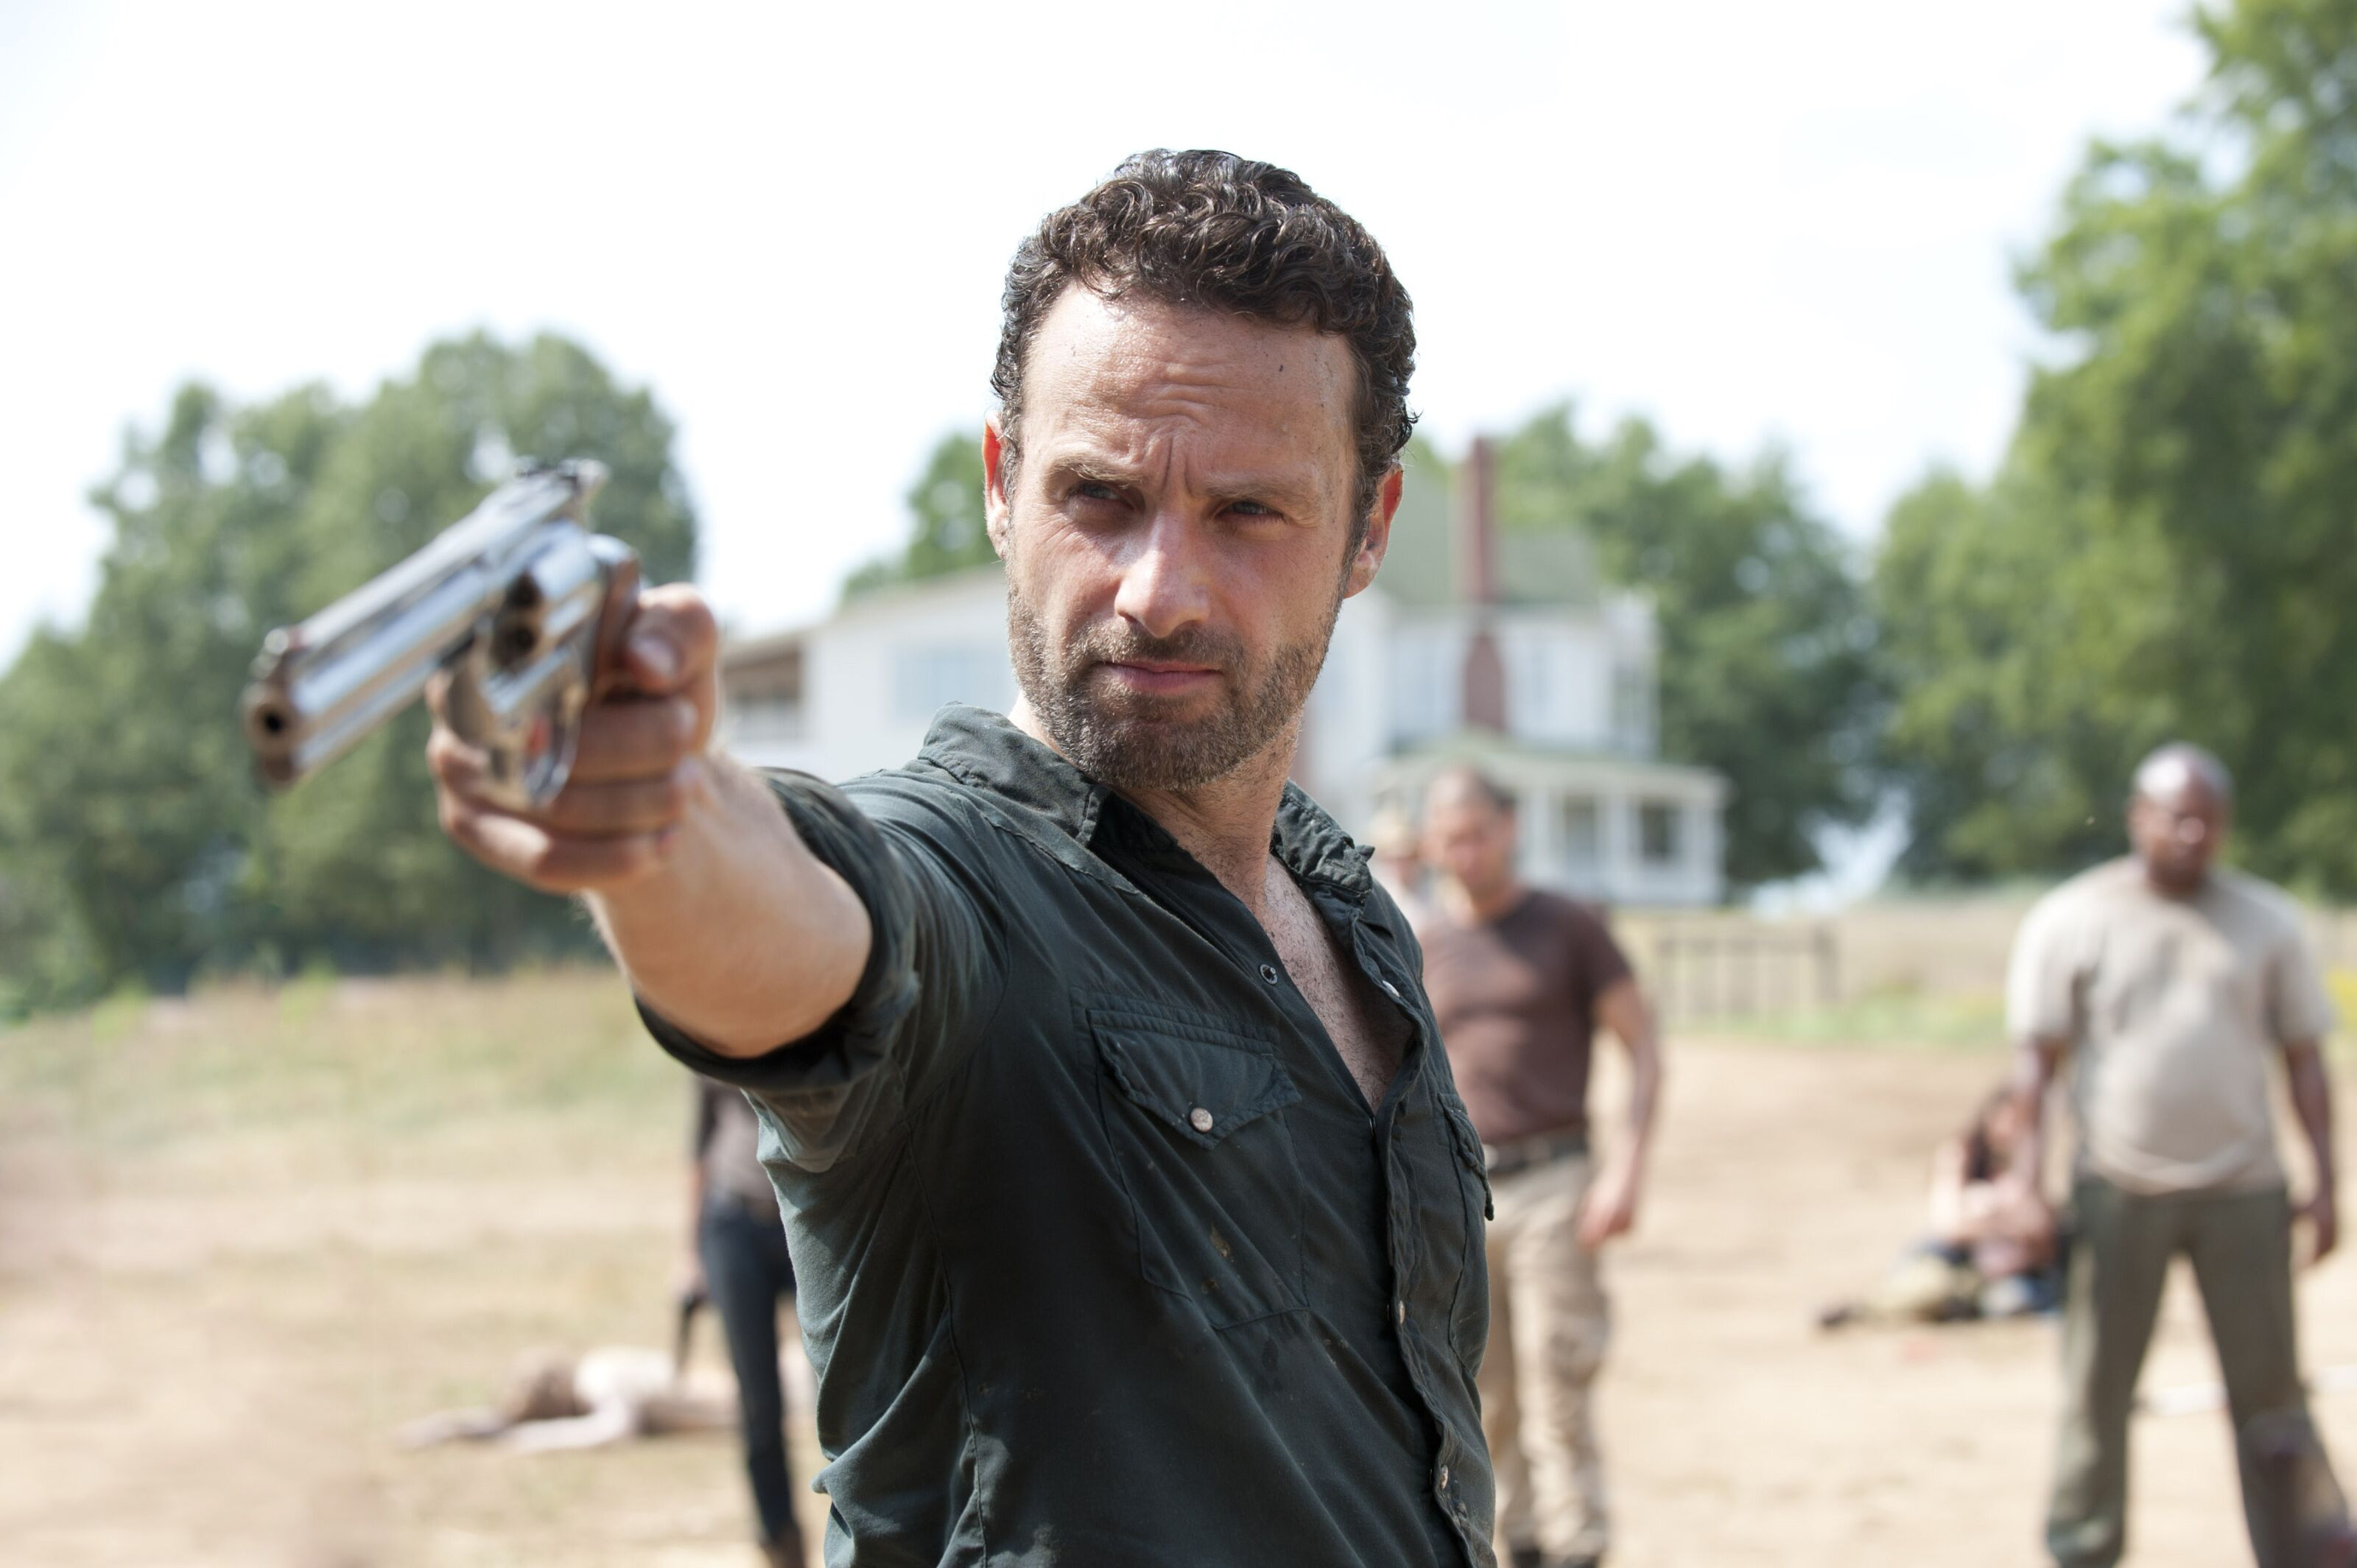 Andrew Lincoln takes aim in preparation for Walking Dead movies